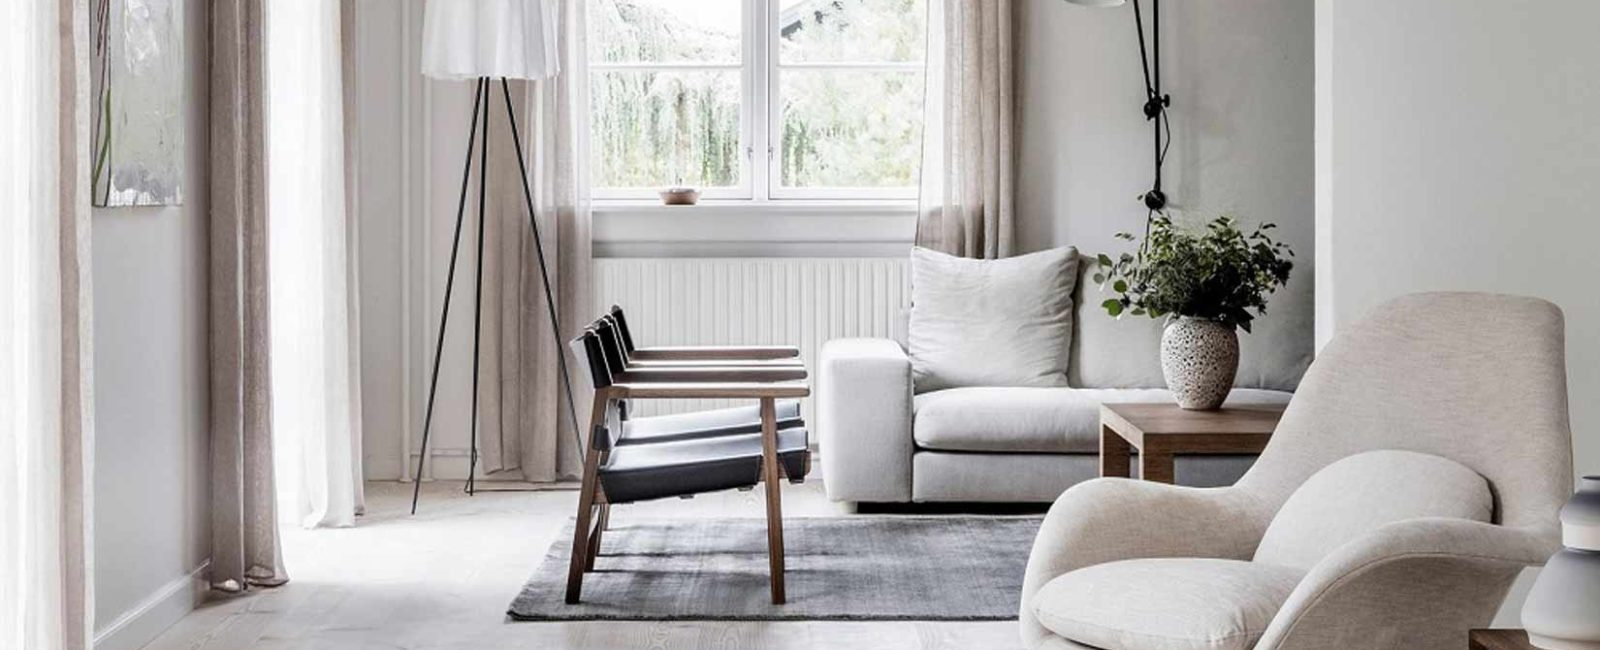 A Fredericia furnished home